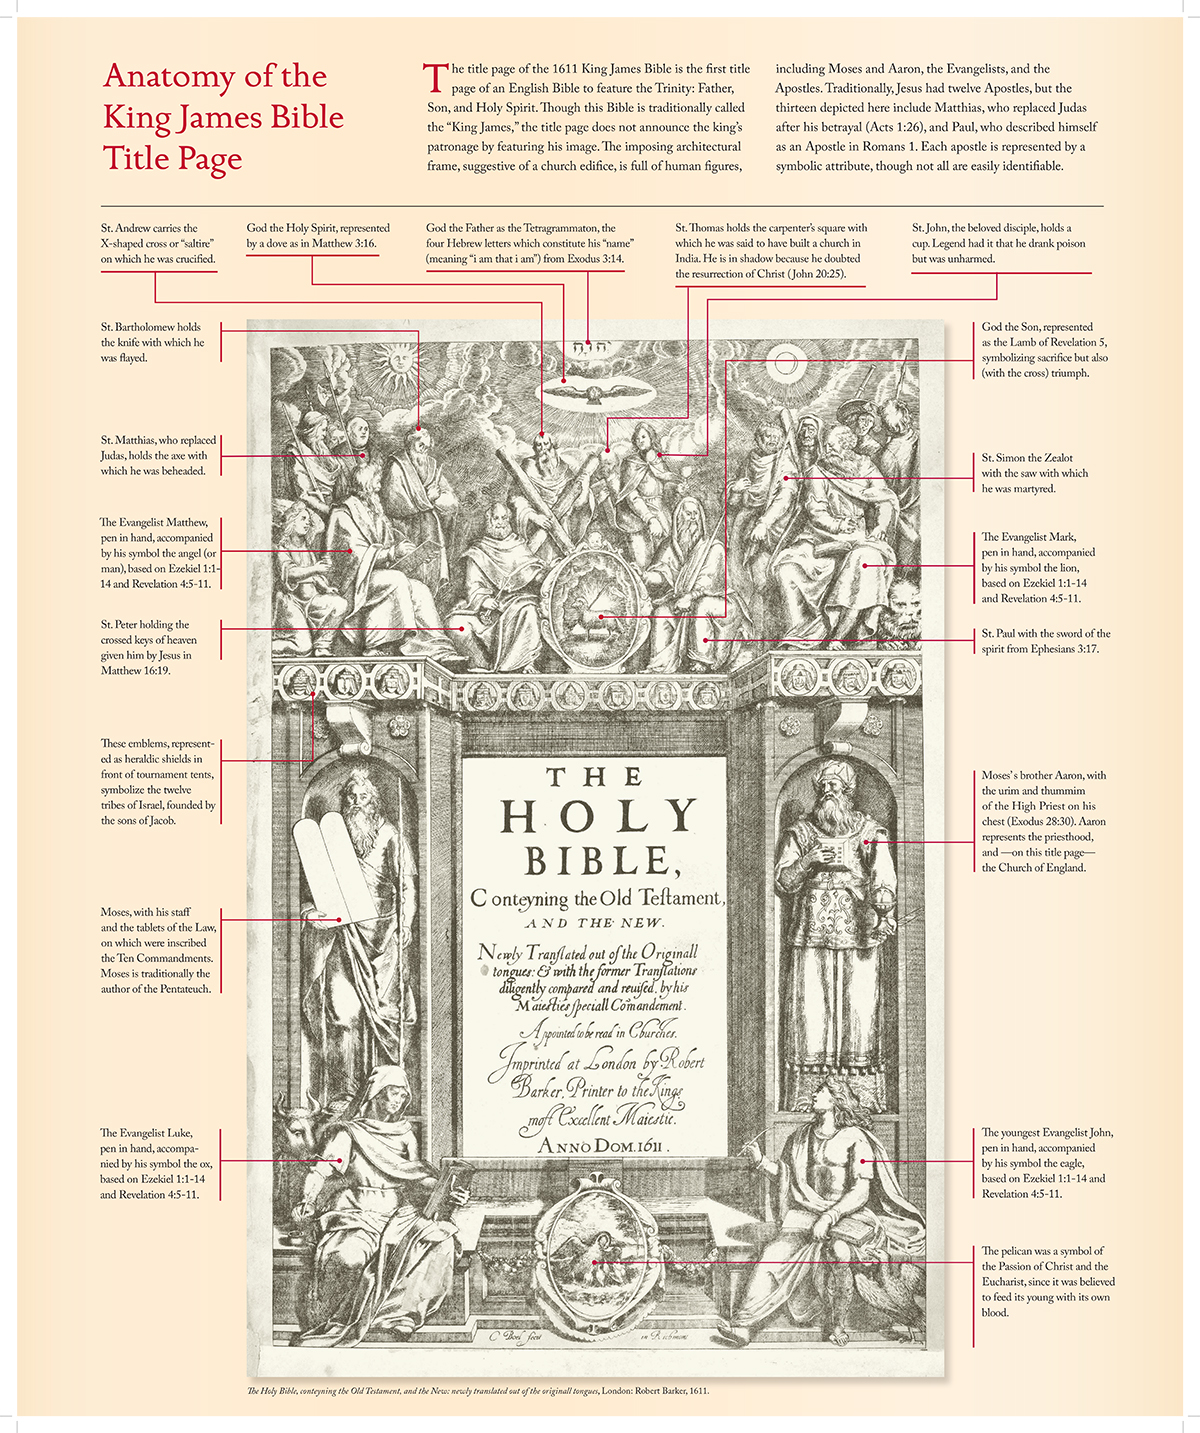 In the Galleries: Anatomy of the King James Bible title page